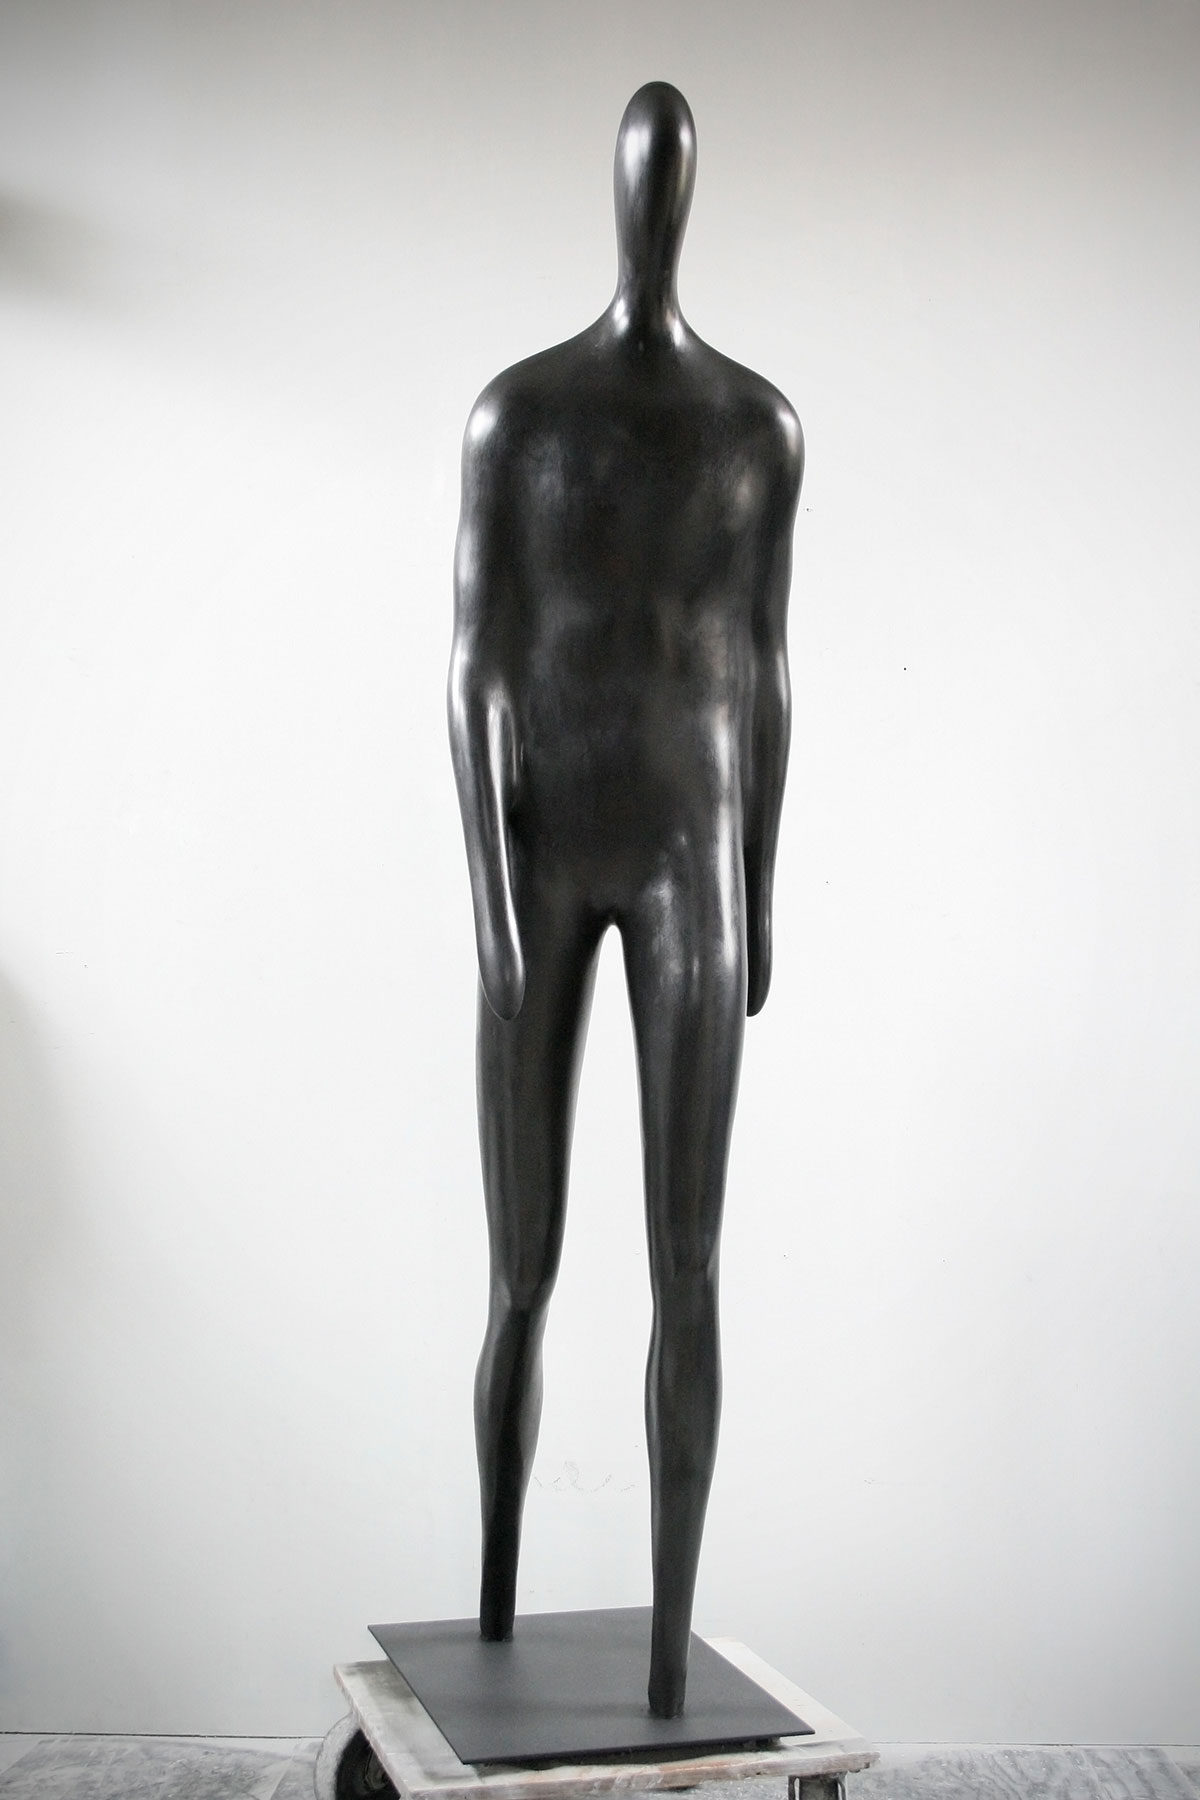 Emil Alzamora 2015 Gypsum With Graphite Wax Finish 82 x 18 x 33 inches / 208 x 46 x 84 cm 2015 Marc Straus Gallery